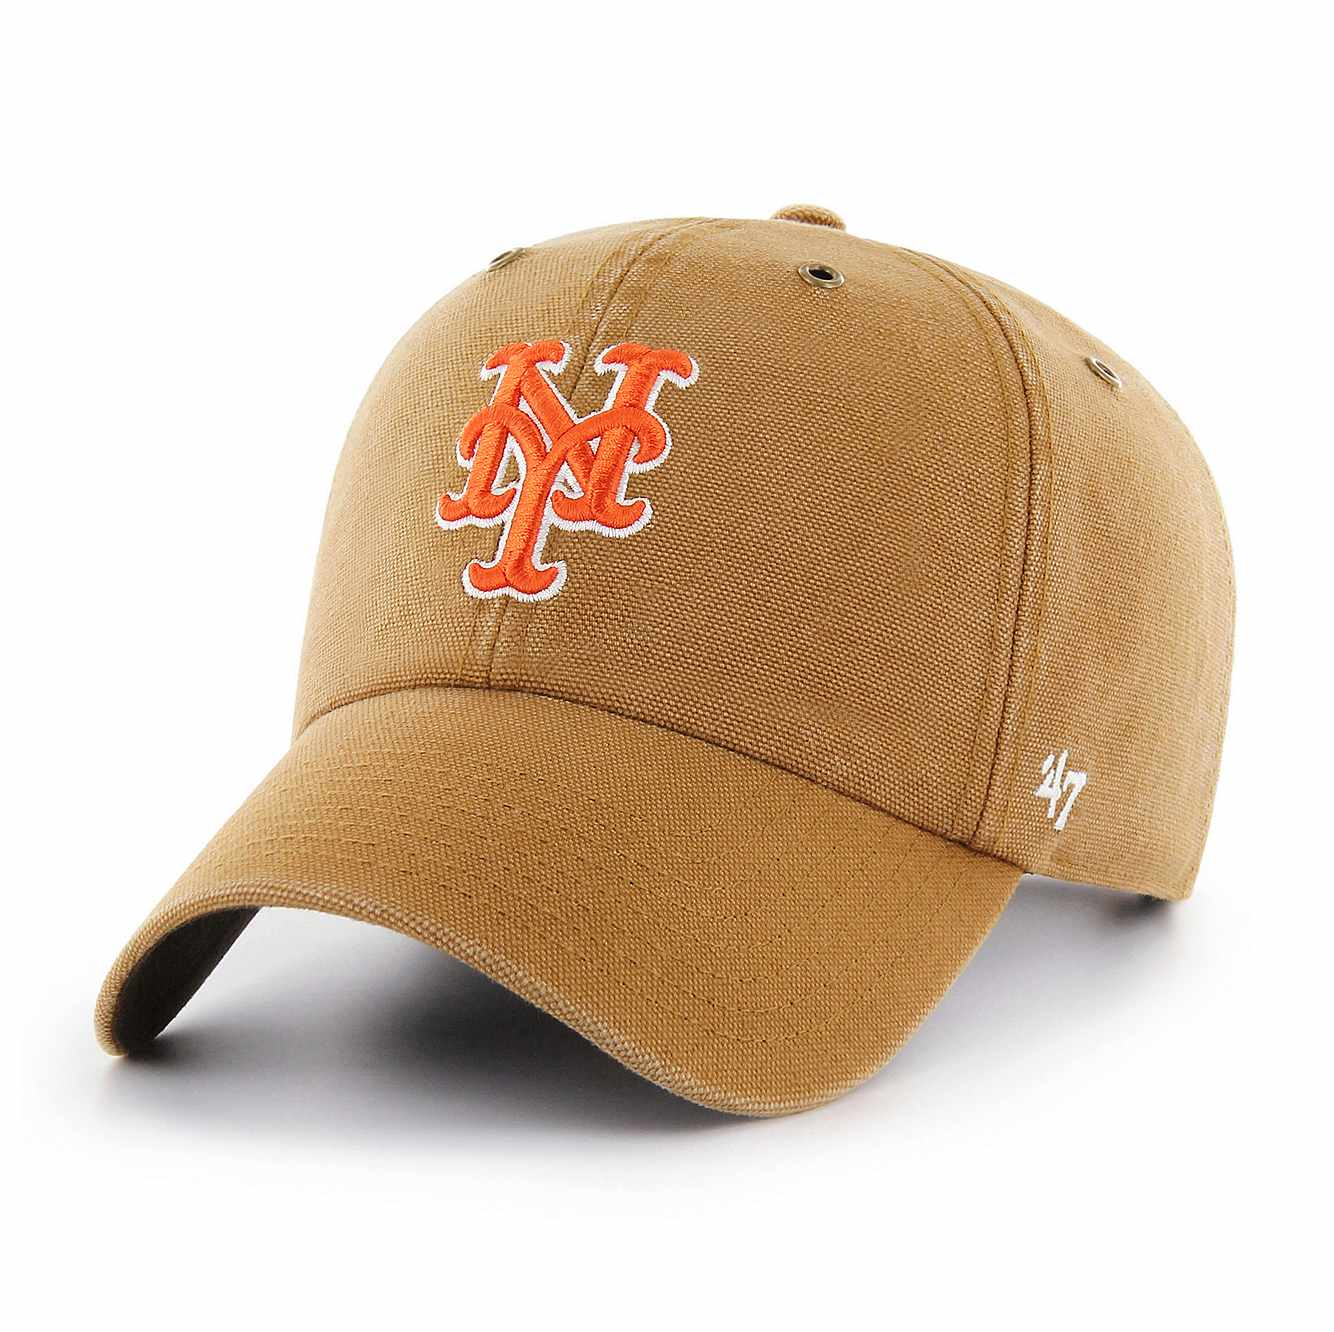 Picture of New York Mets Carhartt x '47 Clean Up in Carhartt Brown